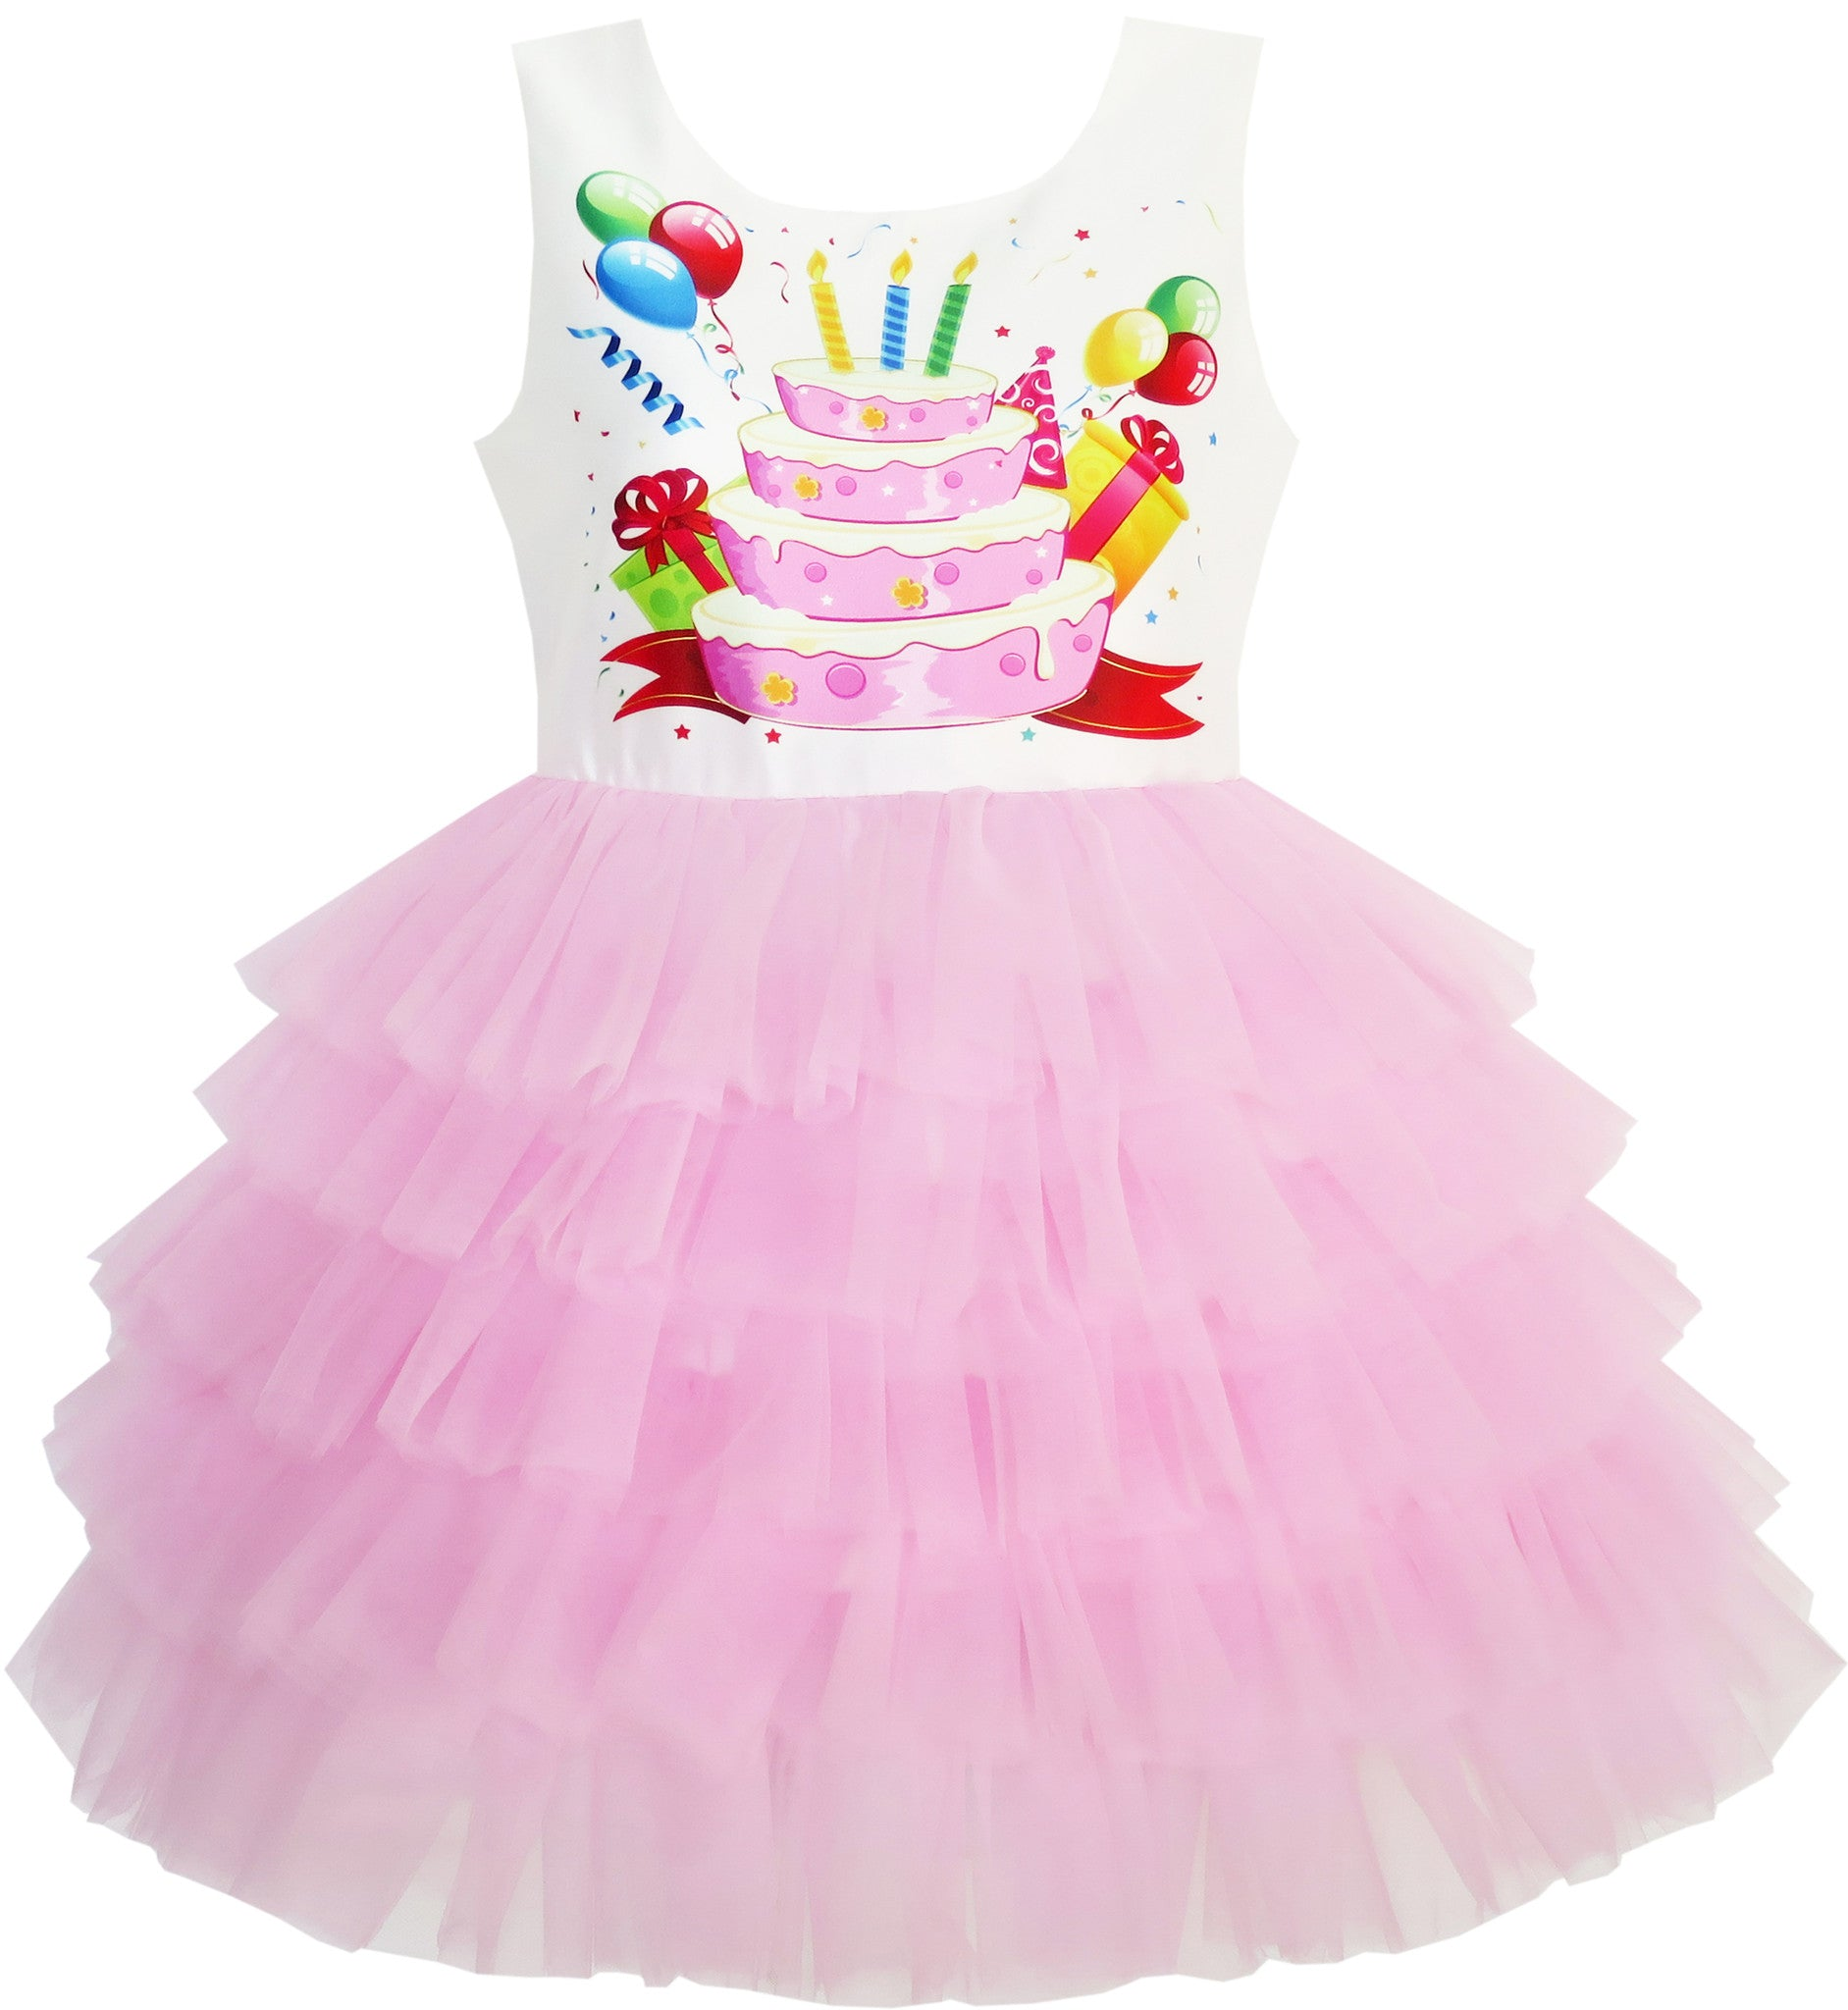 Astounding Girls Dress Birthday Princess Ruffle Dress Cake Balloon Print Funny Birthday Cards Online Barepcheapnameinfo